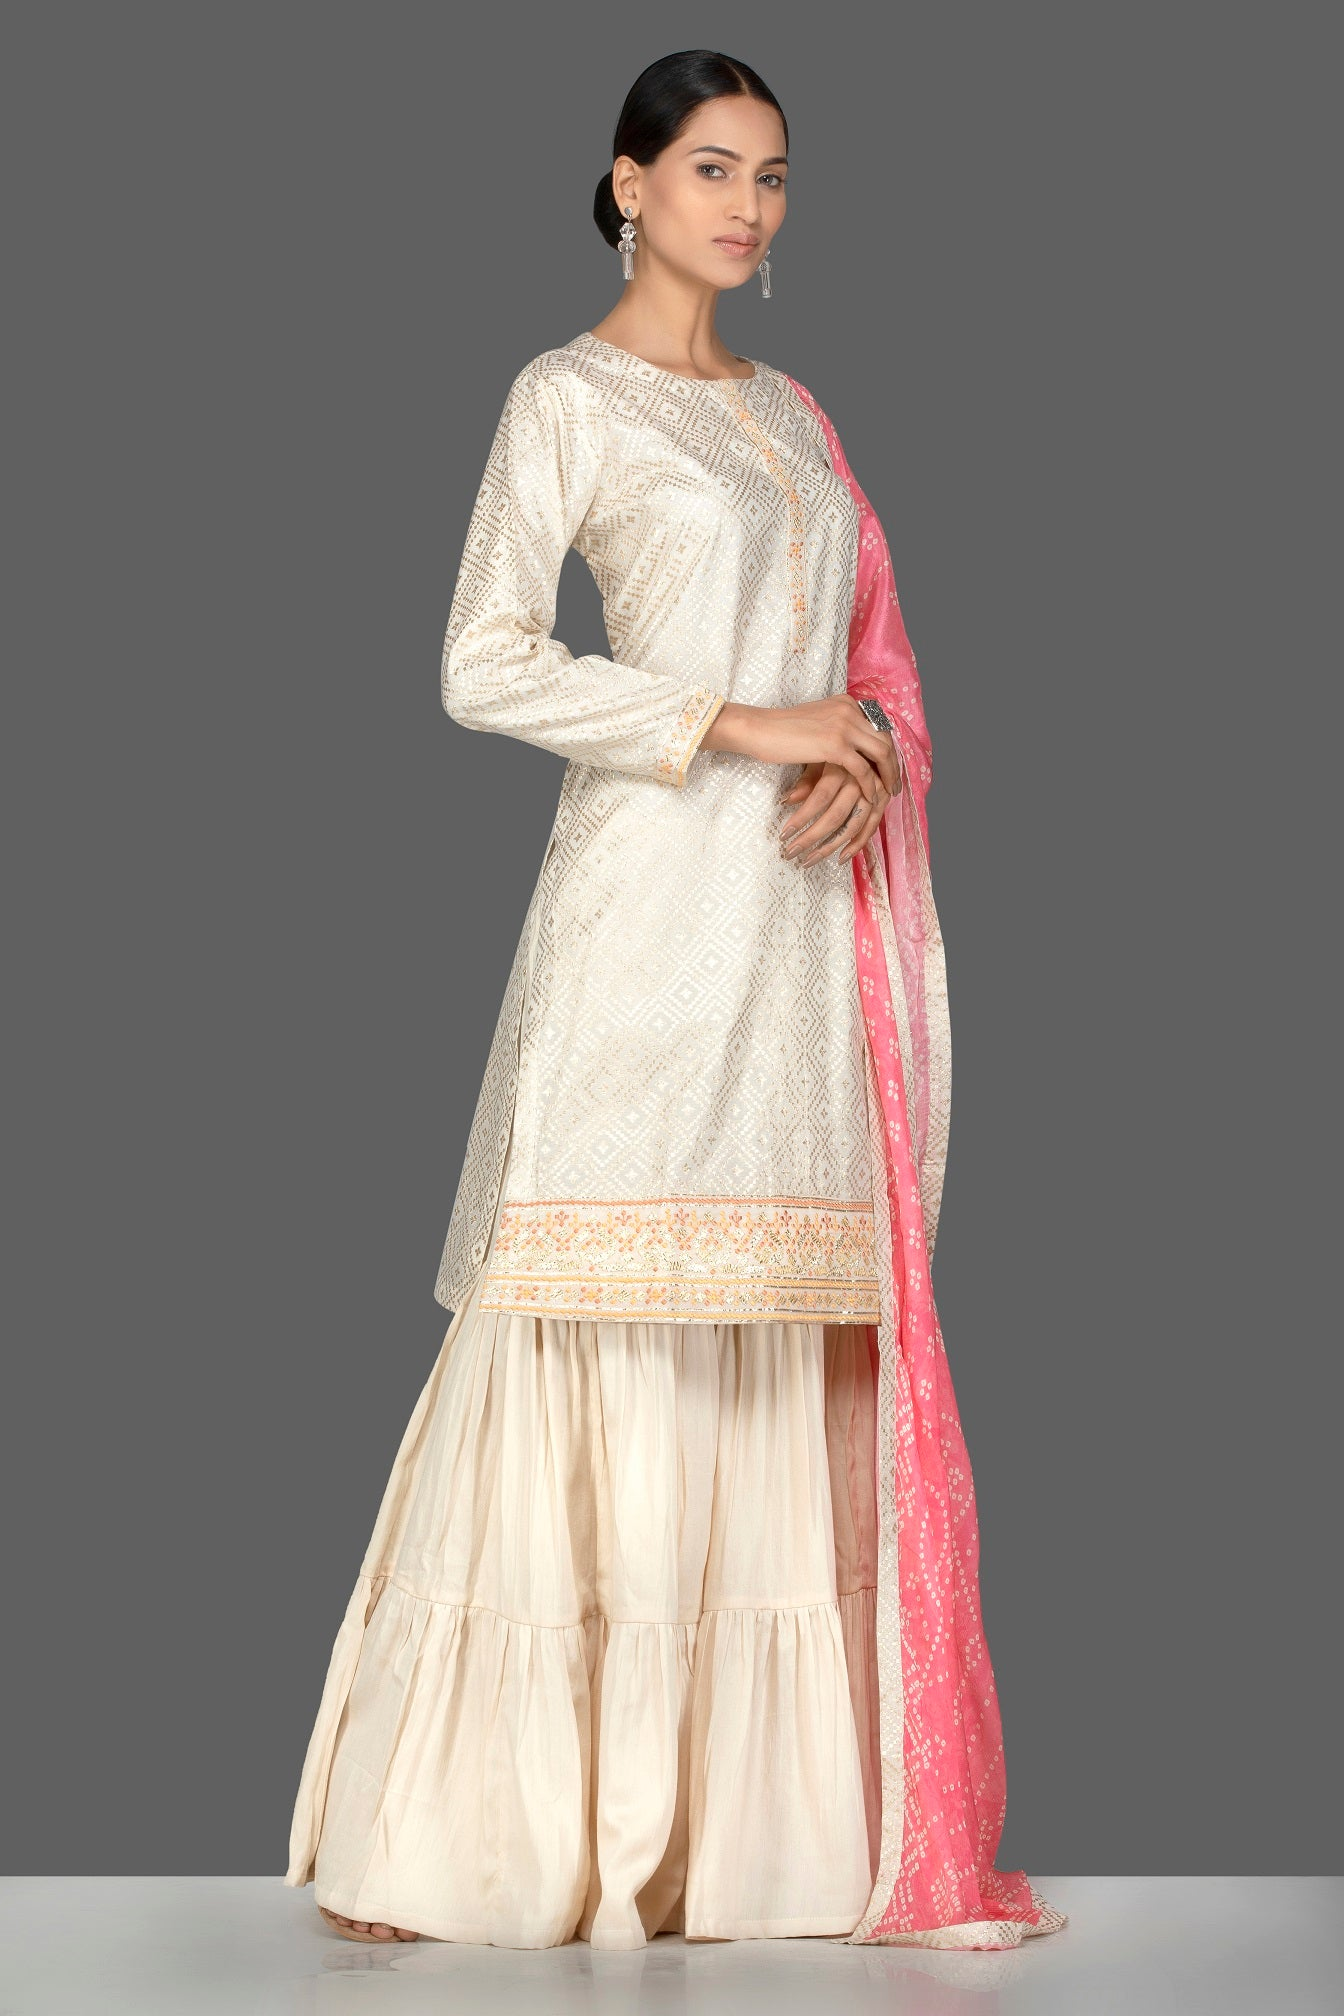 Buy gorgeous cream brocade and georgette sharara online in USA with pink bandhej dupatta. Turn heads at weddings and festive occasions with exquisite Indian women designer clothes from Pure Elegance Indian fashion store in USA. Shop now.-side